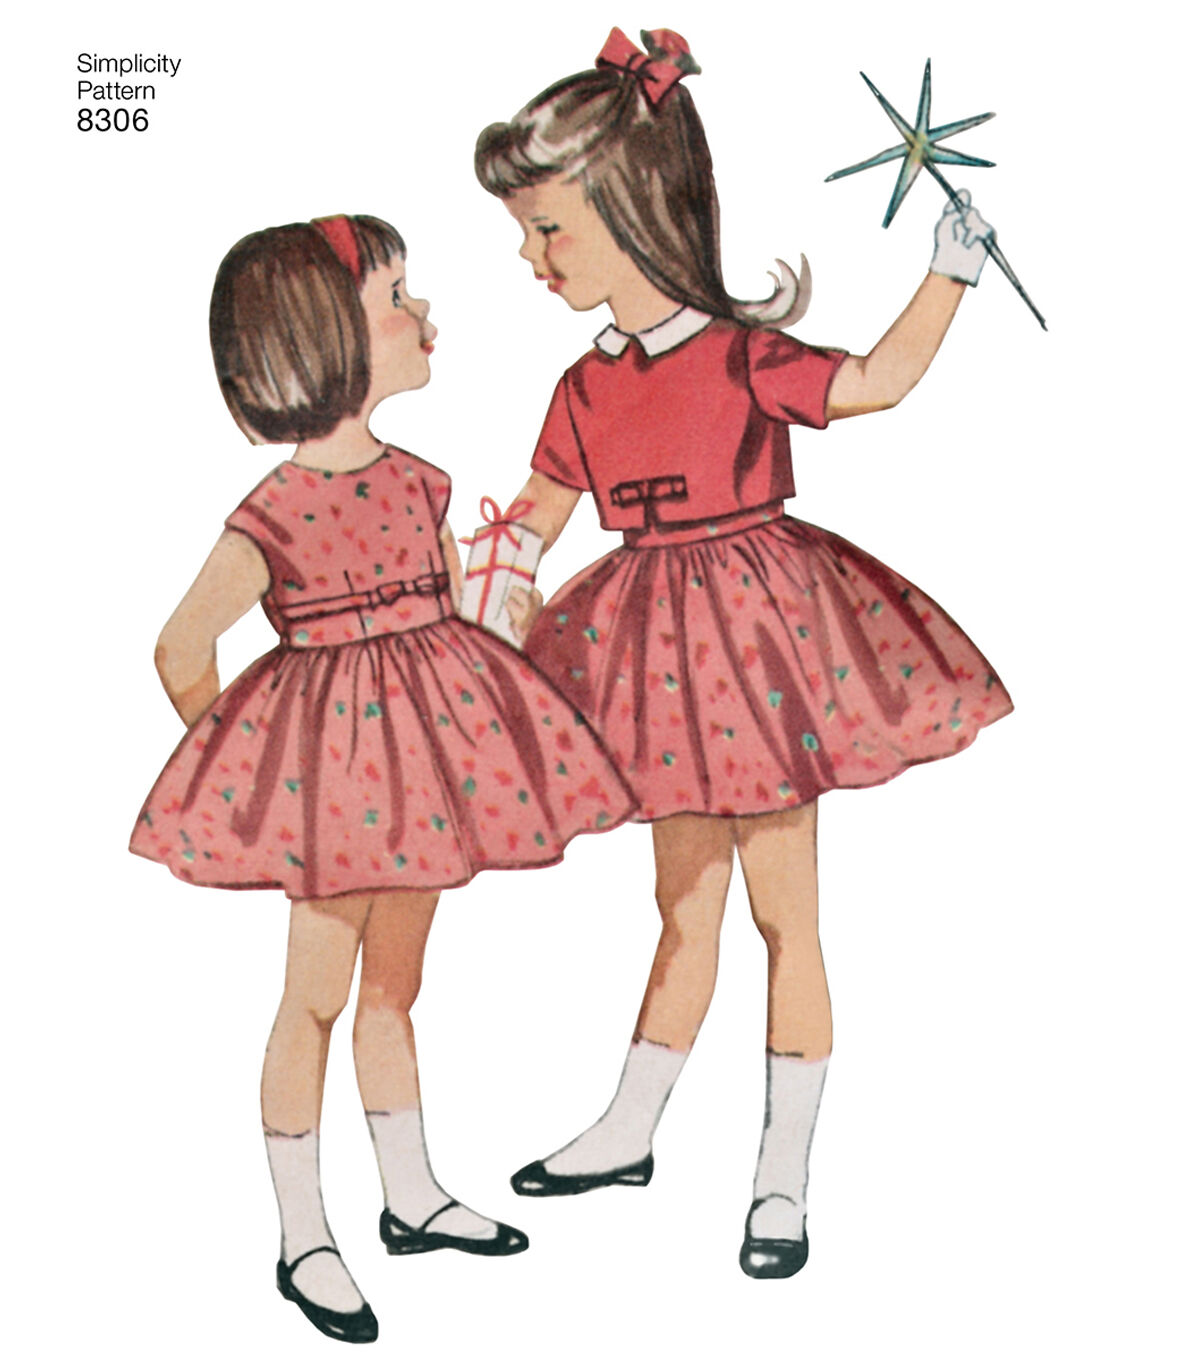 Kids 1950s Clothing & Costumes: Girls, Boys, Toddlers Simplicity Pattern 8306 Childrens Dress  Jacket - Size A 3 - 4 - 5 - 6 - 7 - 8 $11.37 AT vintagedancer.com